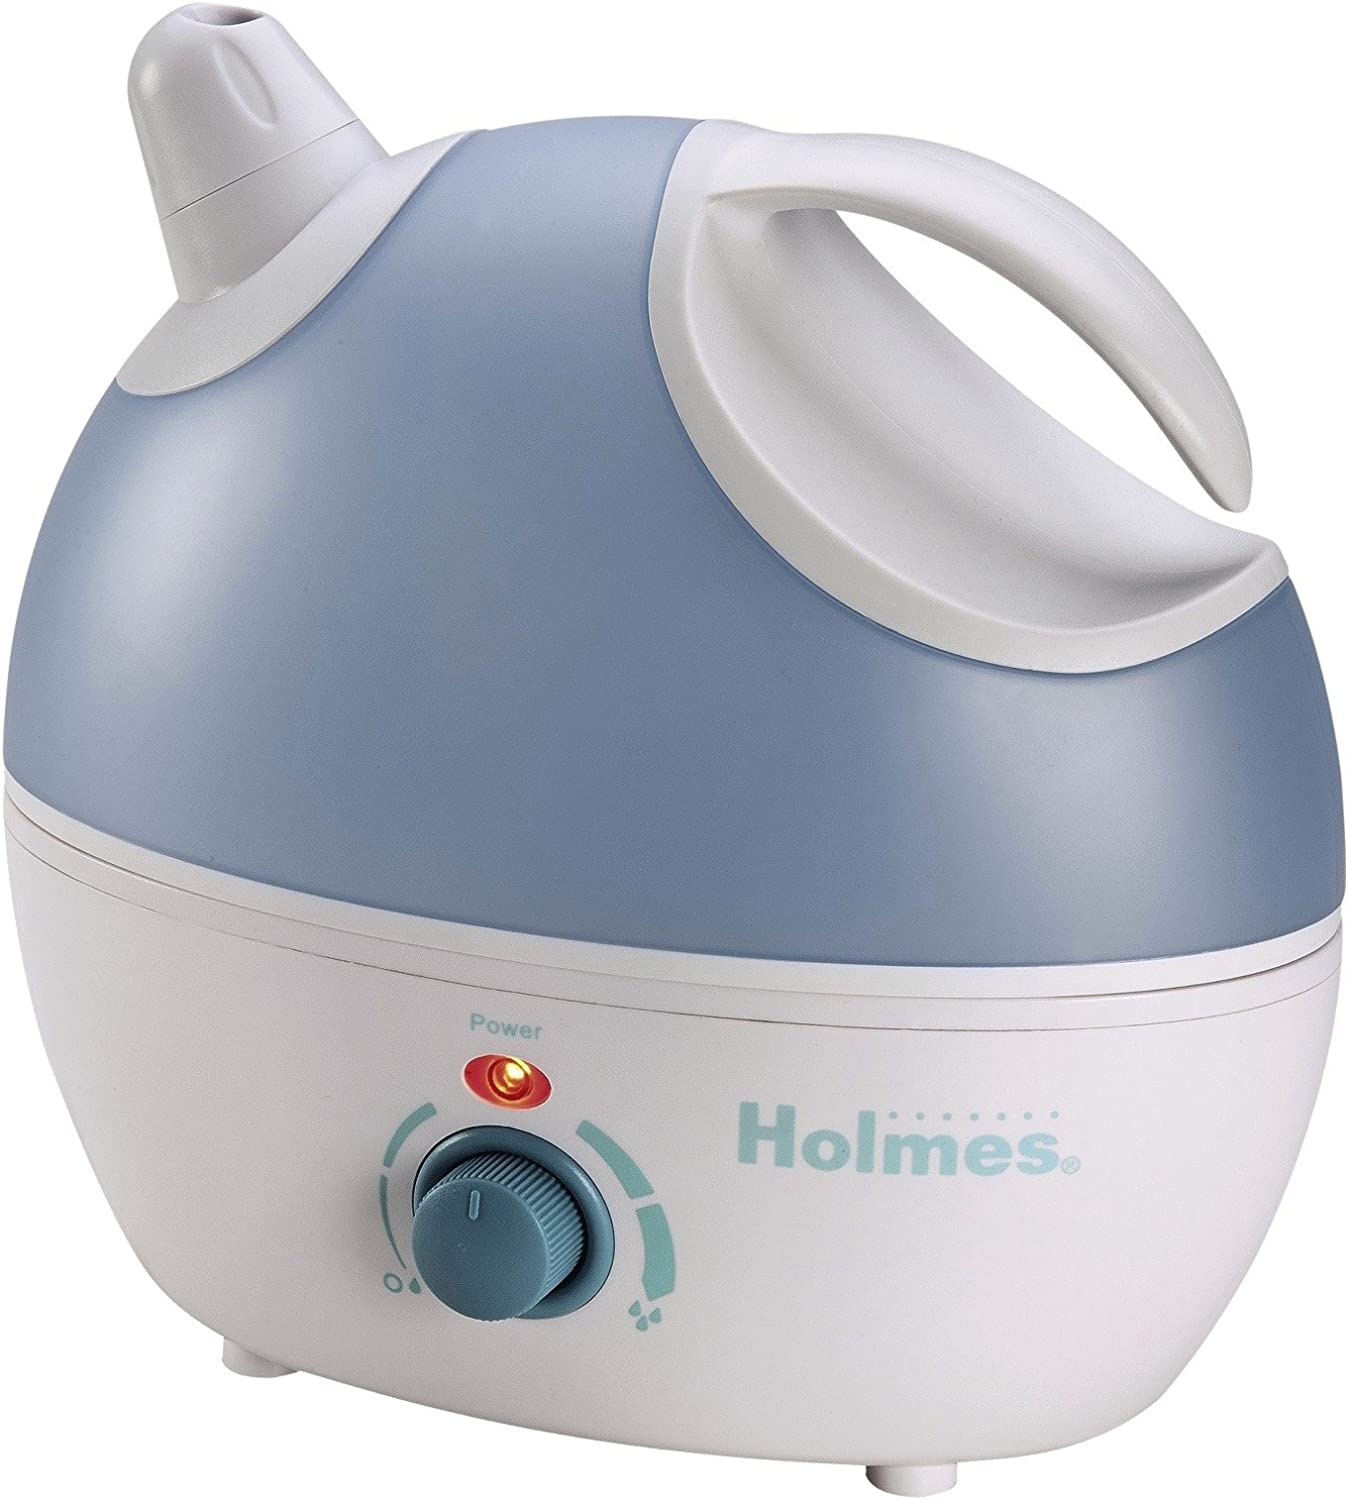 Holmes Personal Ultrasonic Humidifier HM500TG, 0.4 Gal